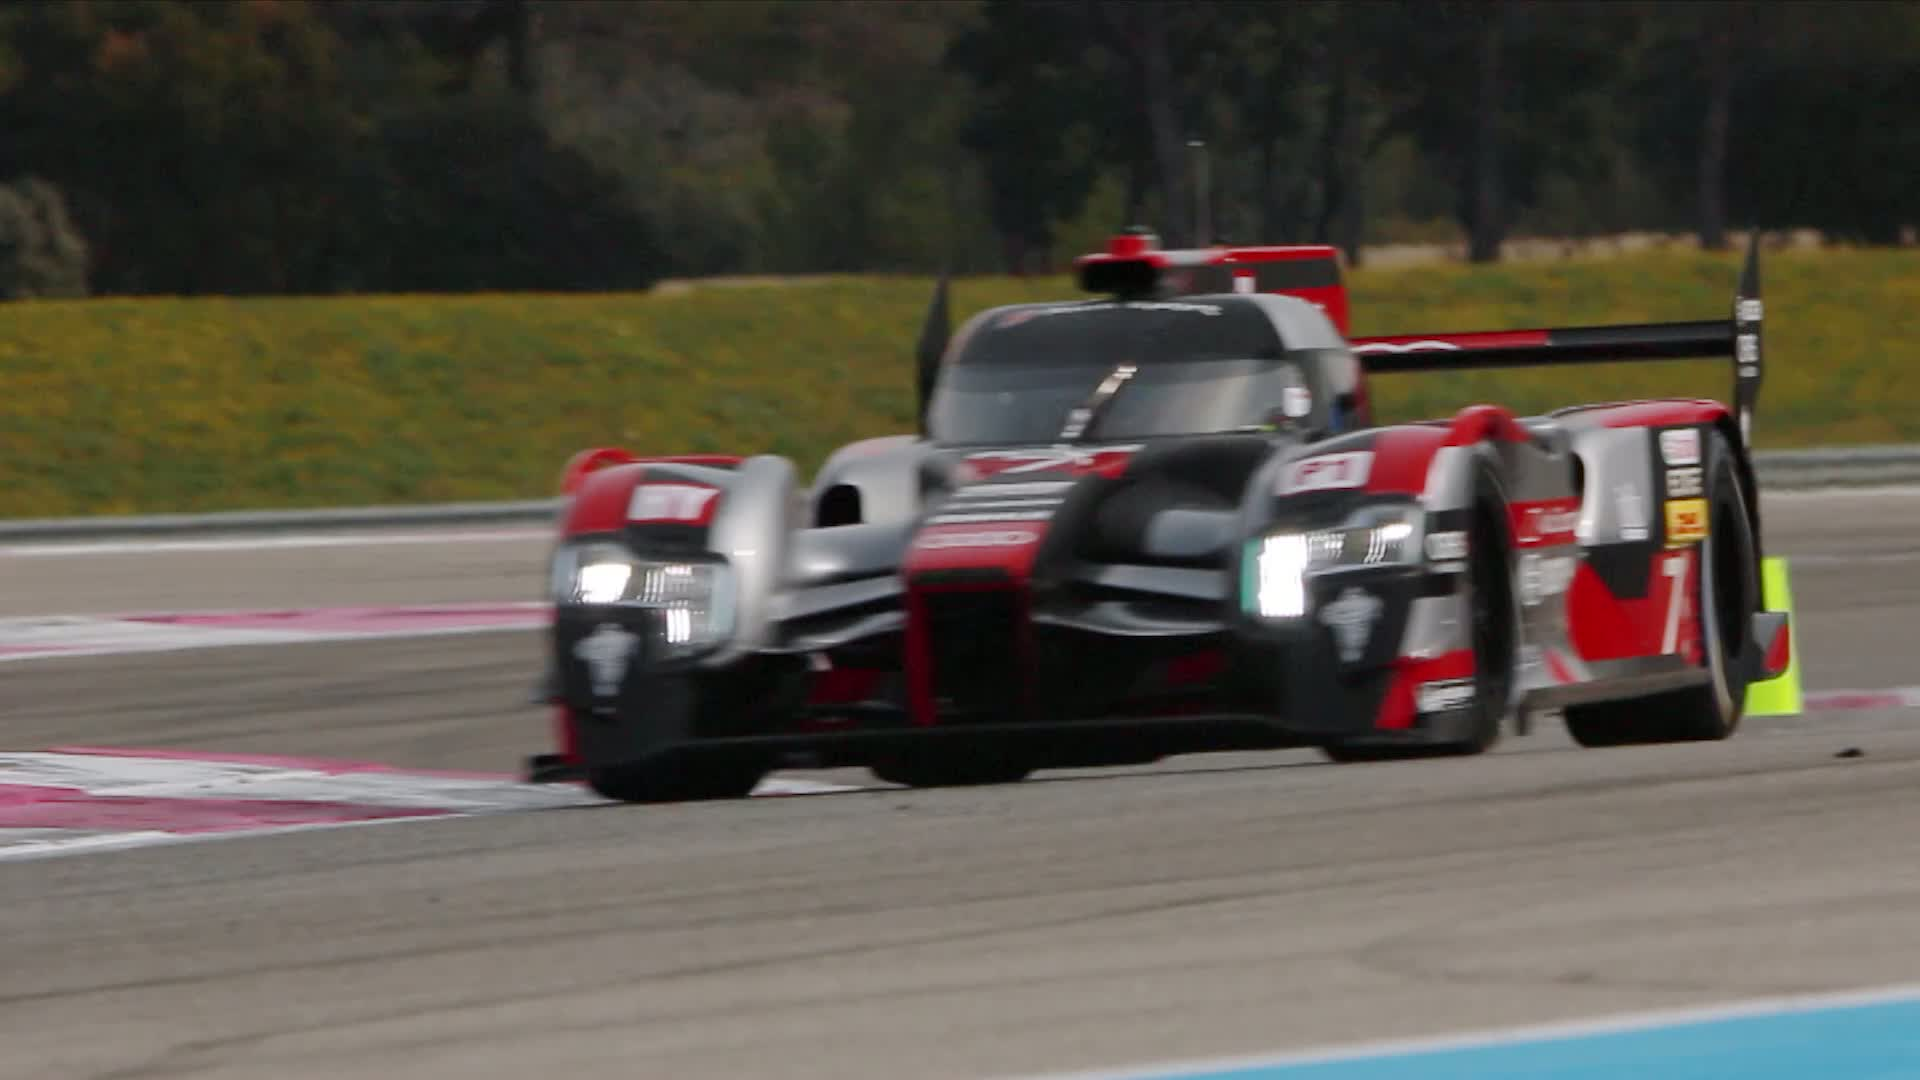 60 Seconds of Audi Sport 2/2016 - WEC, Prologue in Le Castellet